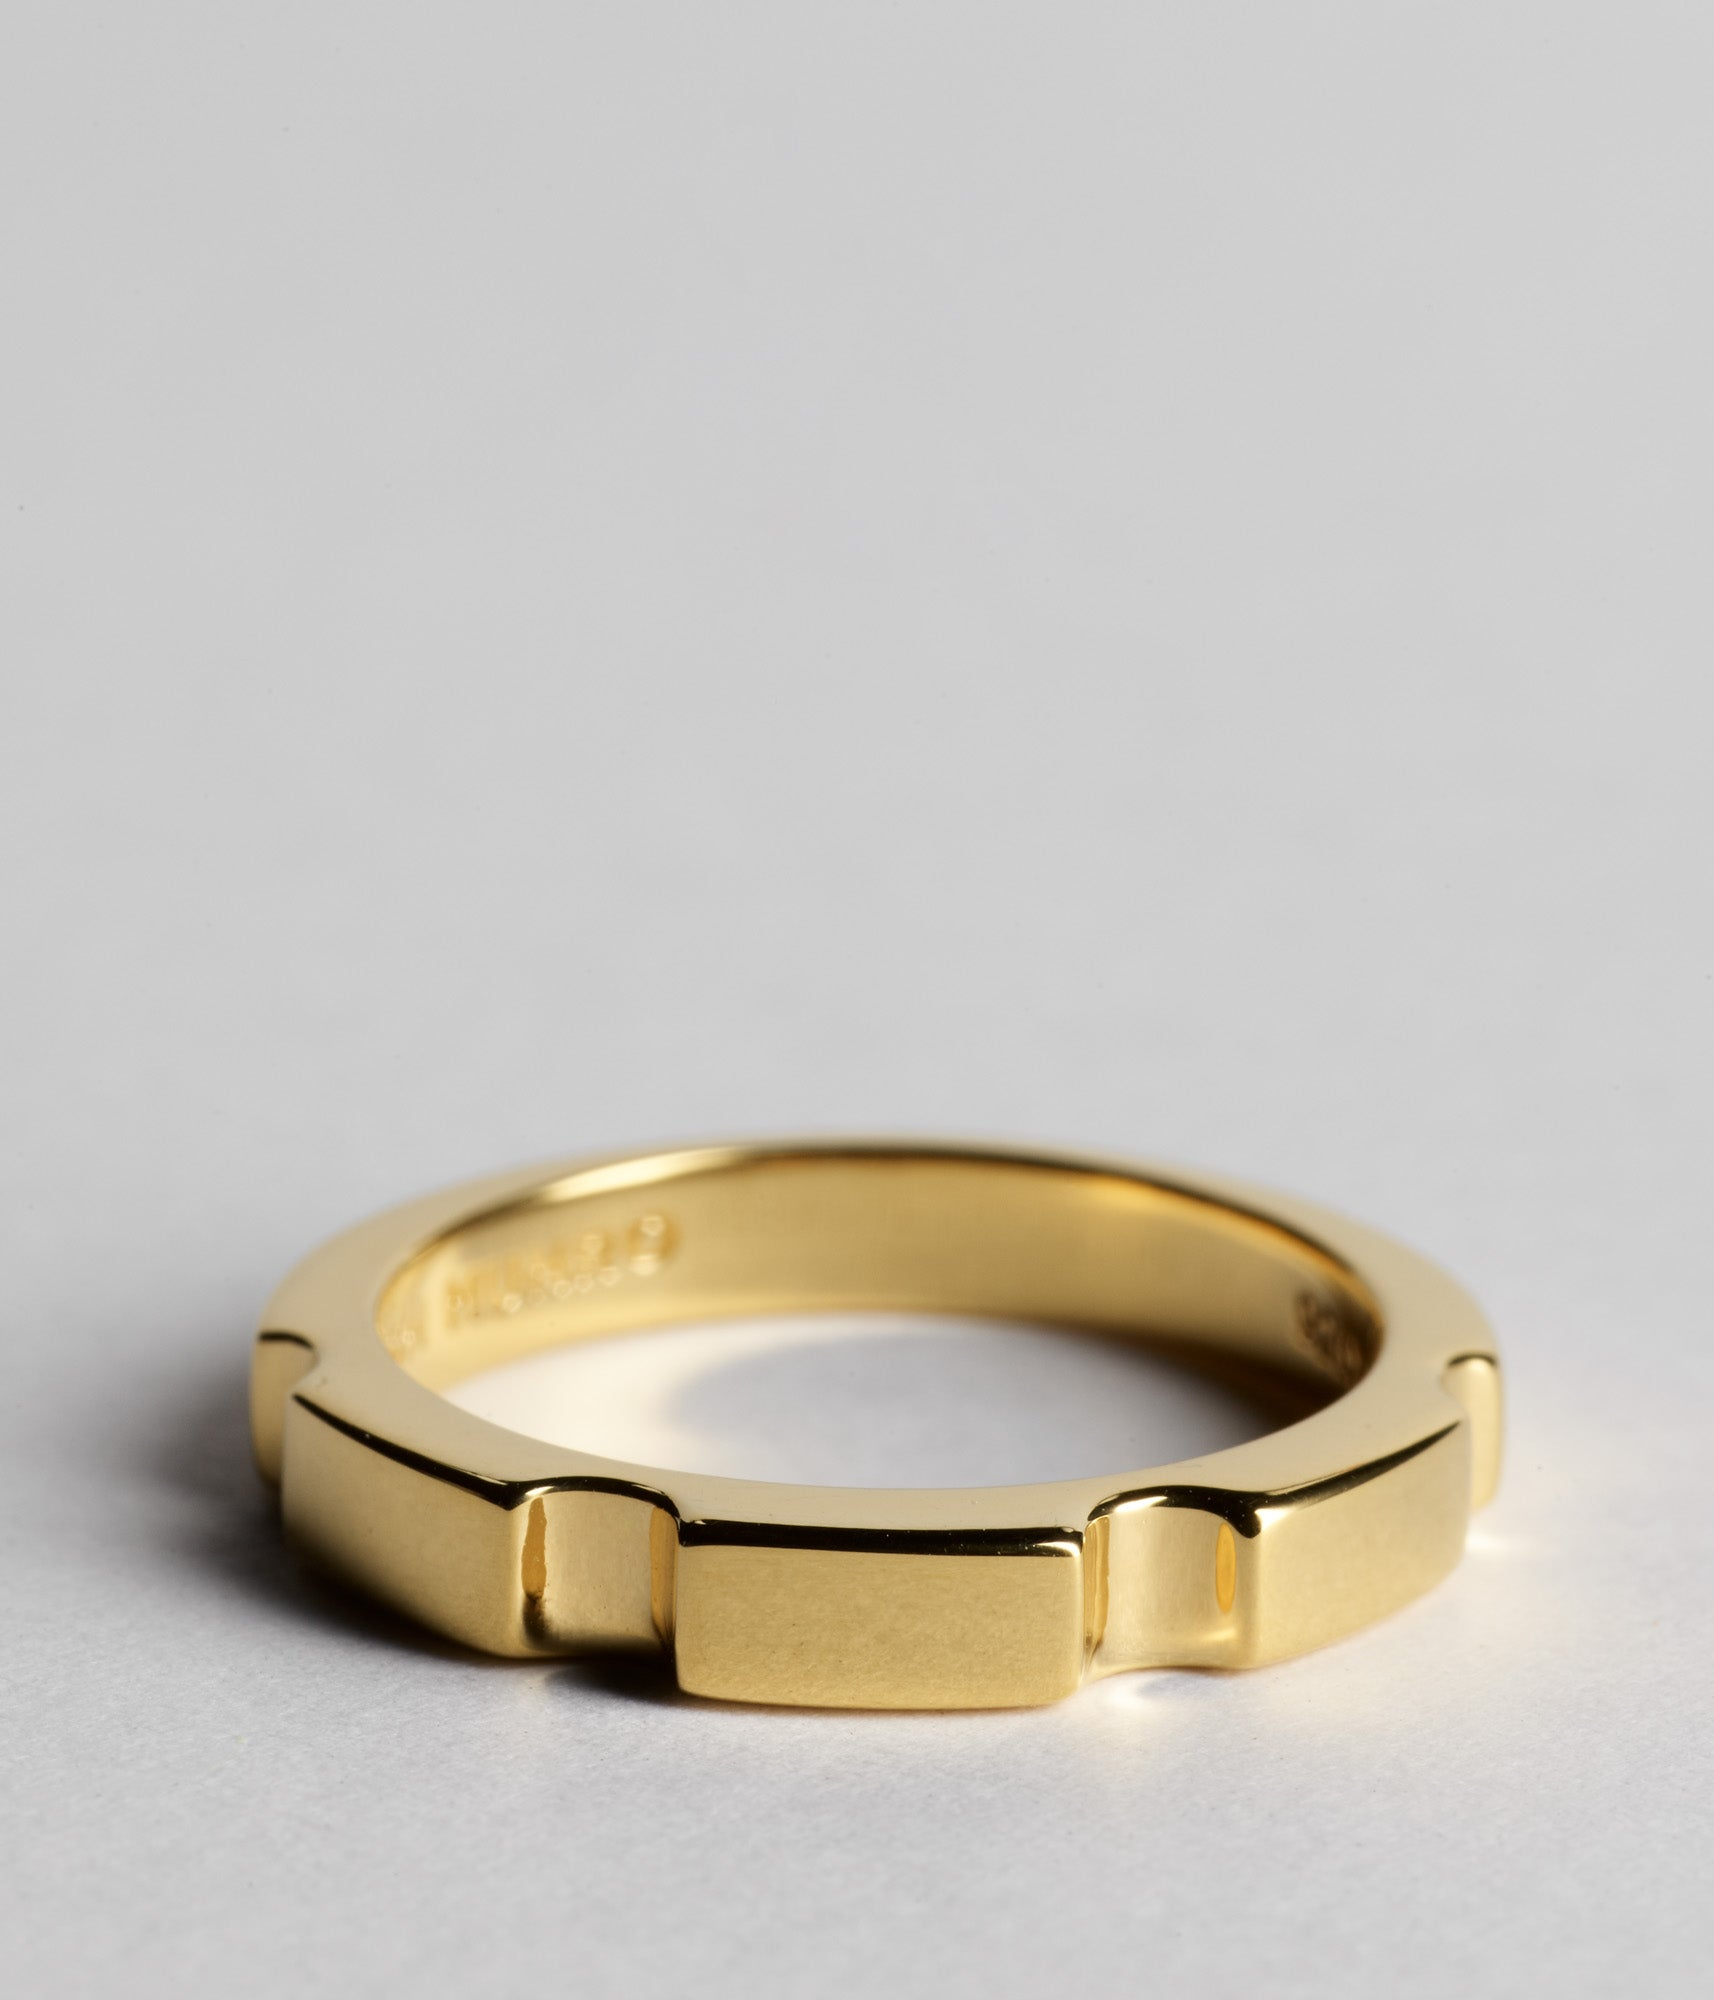 Parmentier Bridge Ring - Gold Vermeil